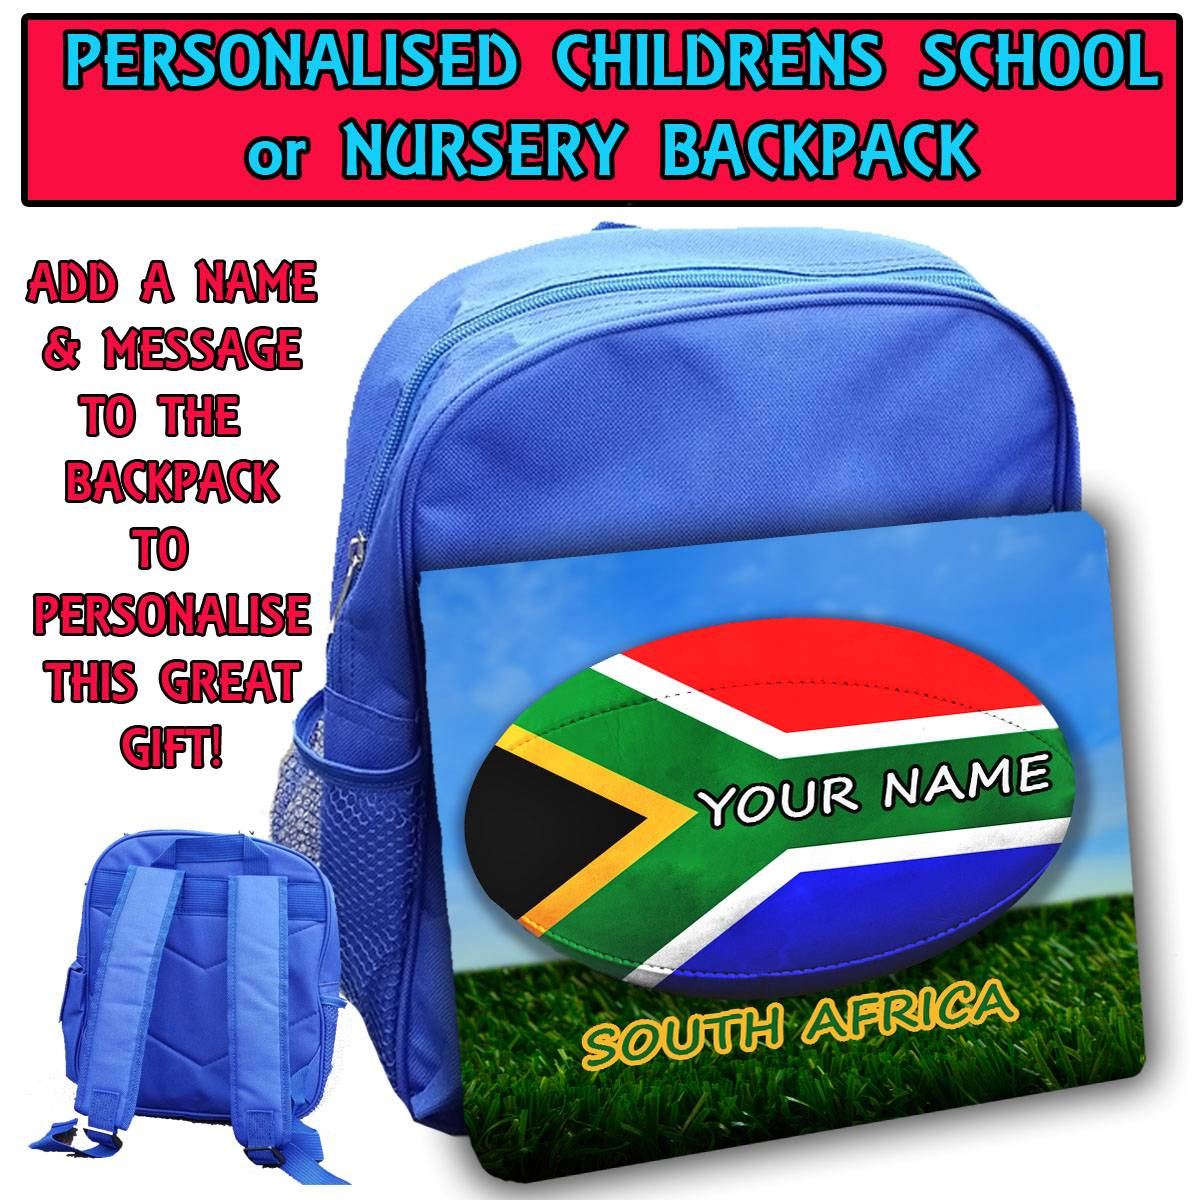 ... -RUGBY-SOUTH-AFRICA-KIDS-RUCKSACK-SCHOOL-BAG-BLUE-BACKPACK-SH241